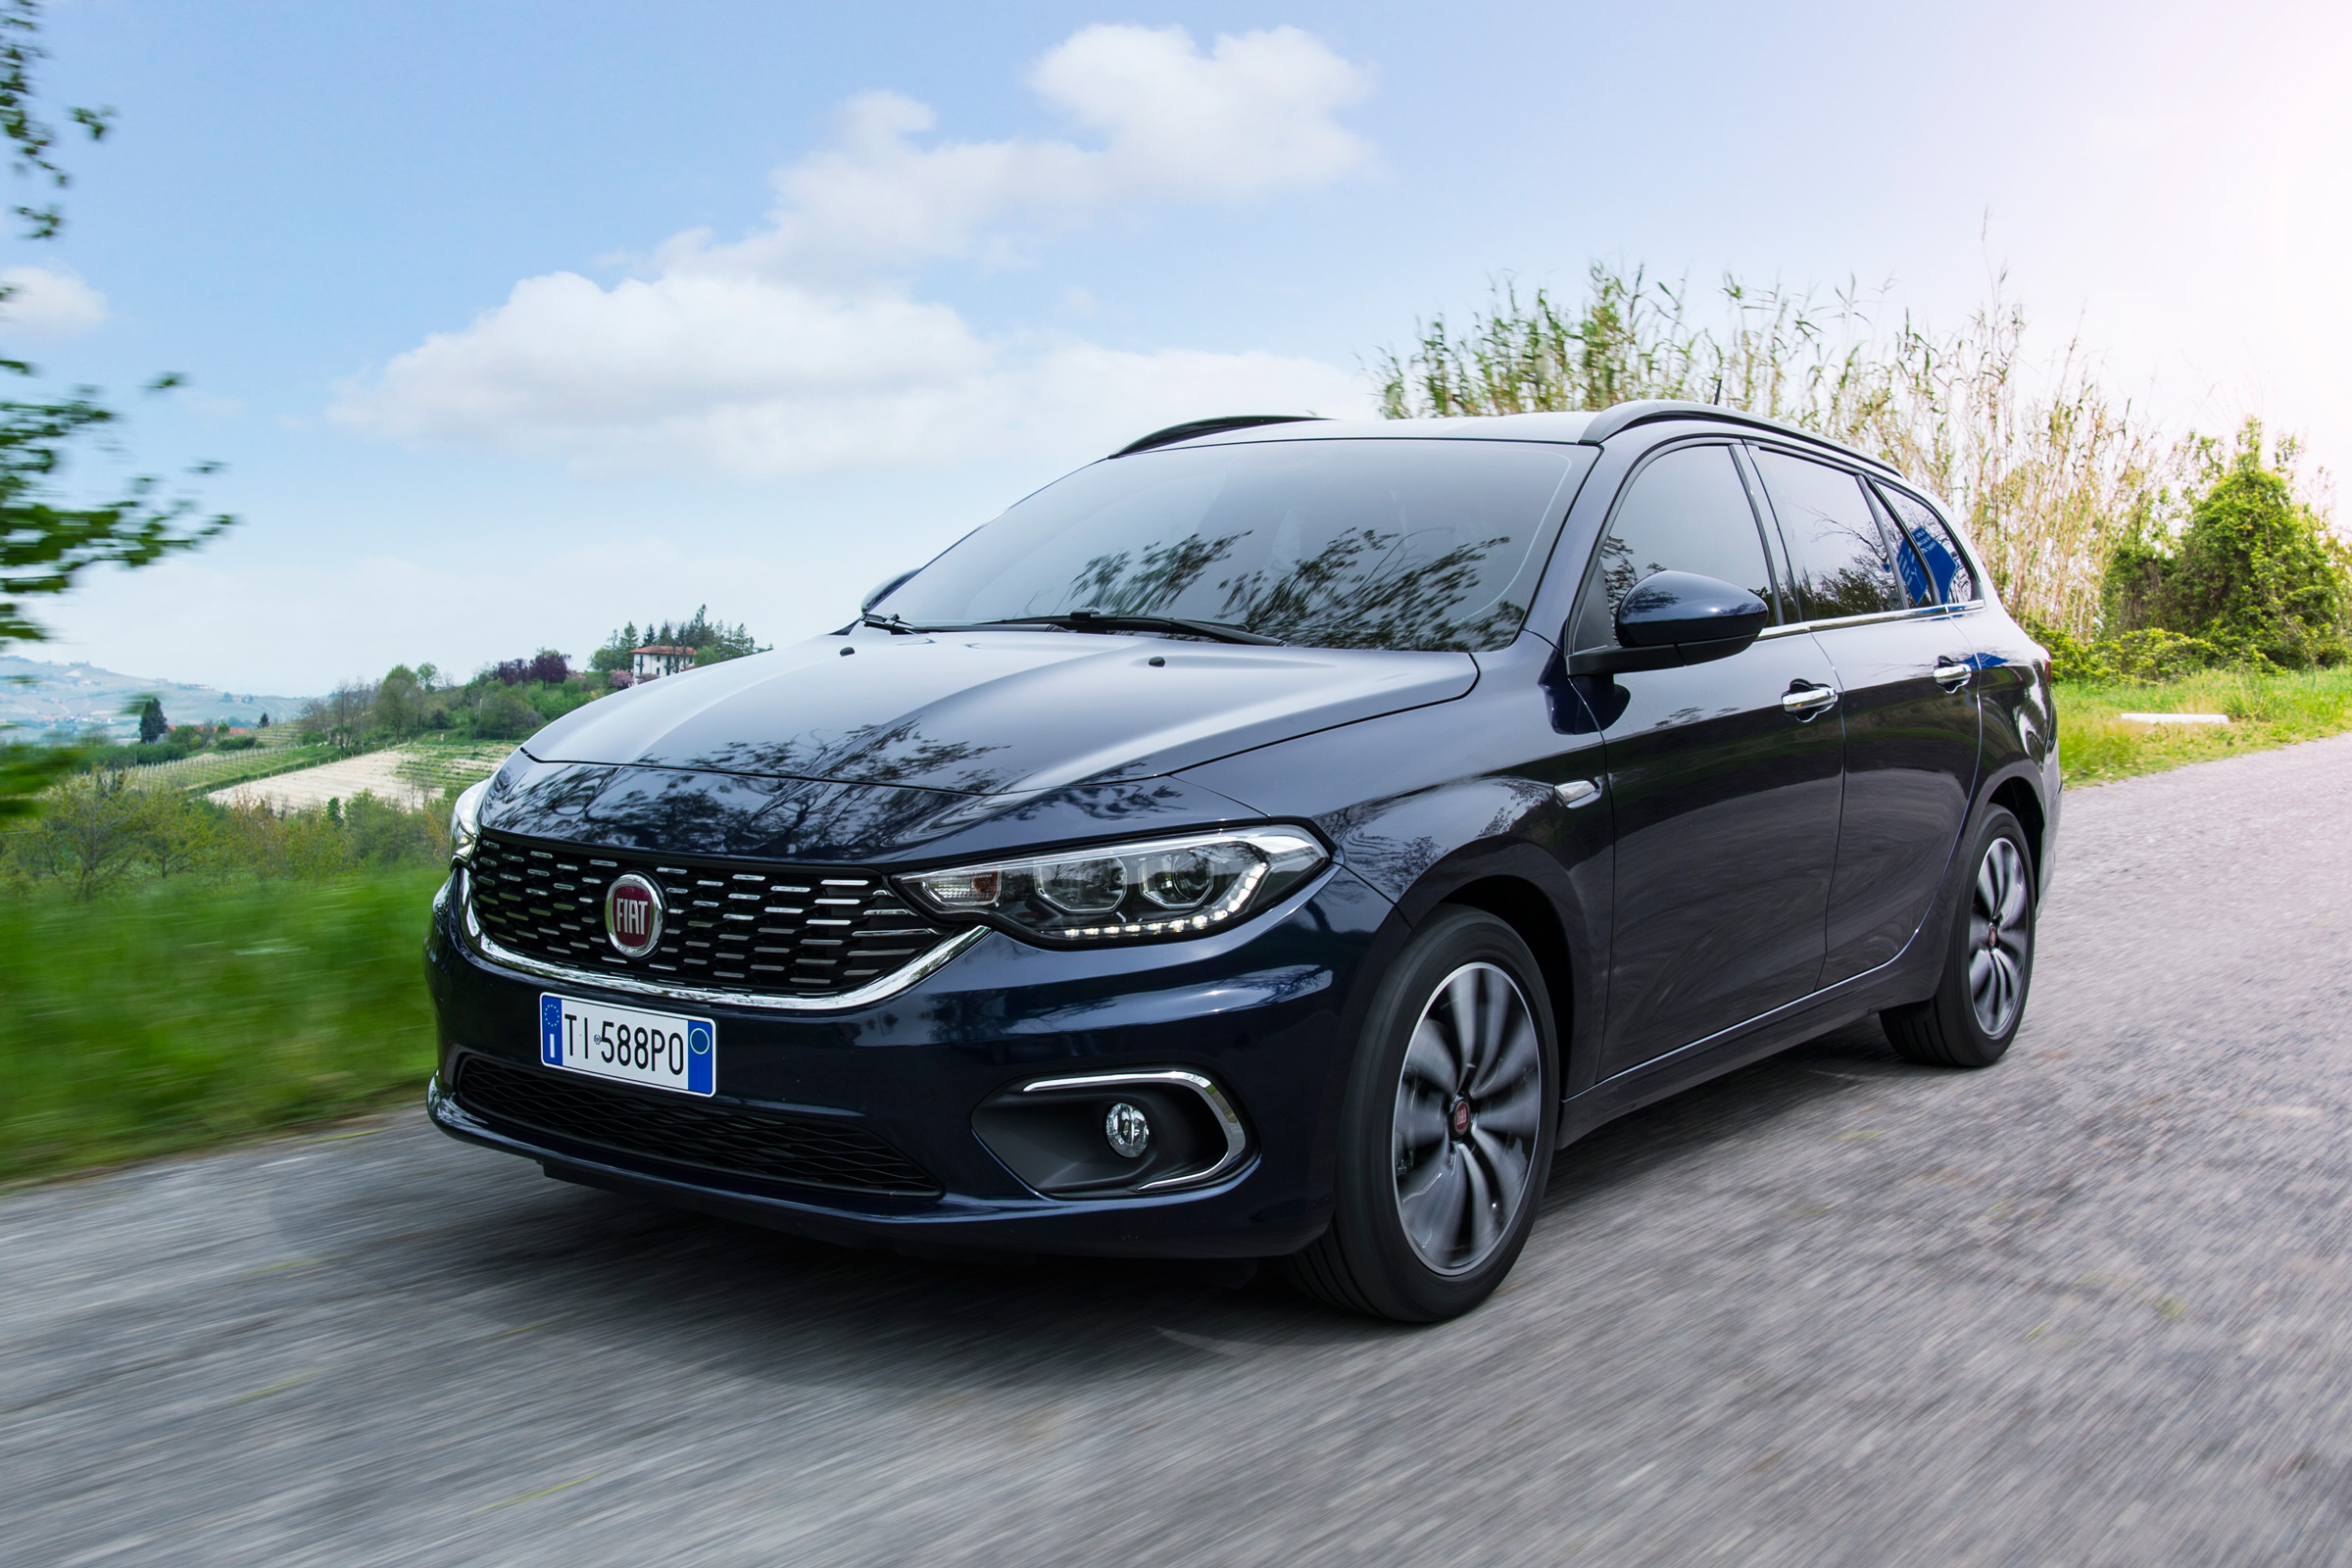 Fiat Tipo 356 2015 - now Station wagon 5 door #4